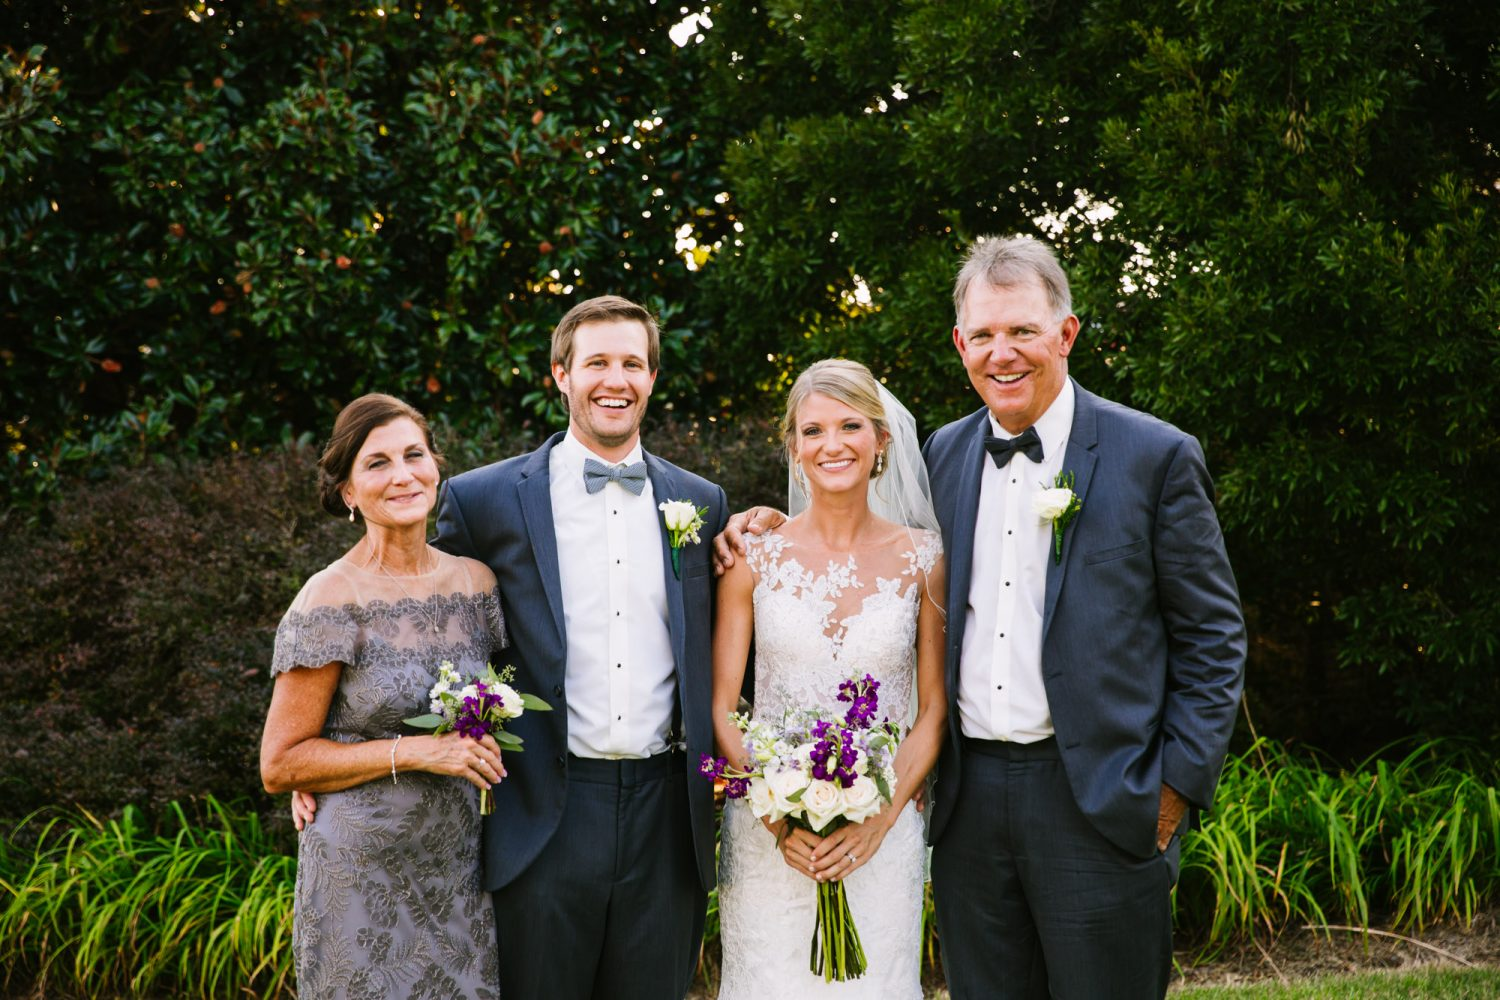 Waynesville, NC Wedding Photography | Wedding Family Portrait